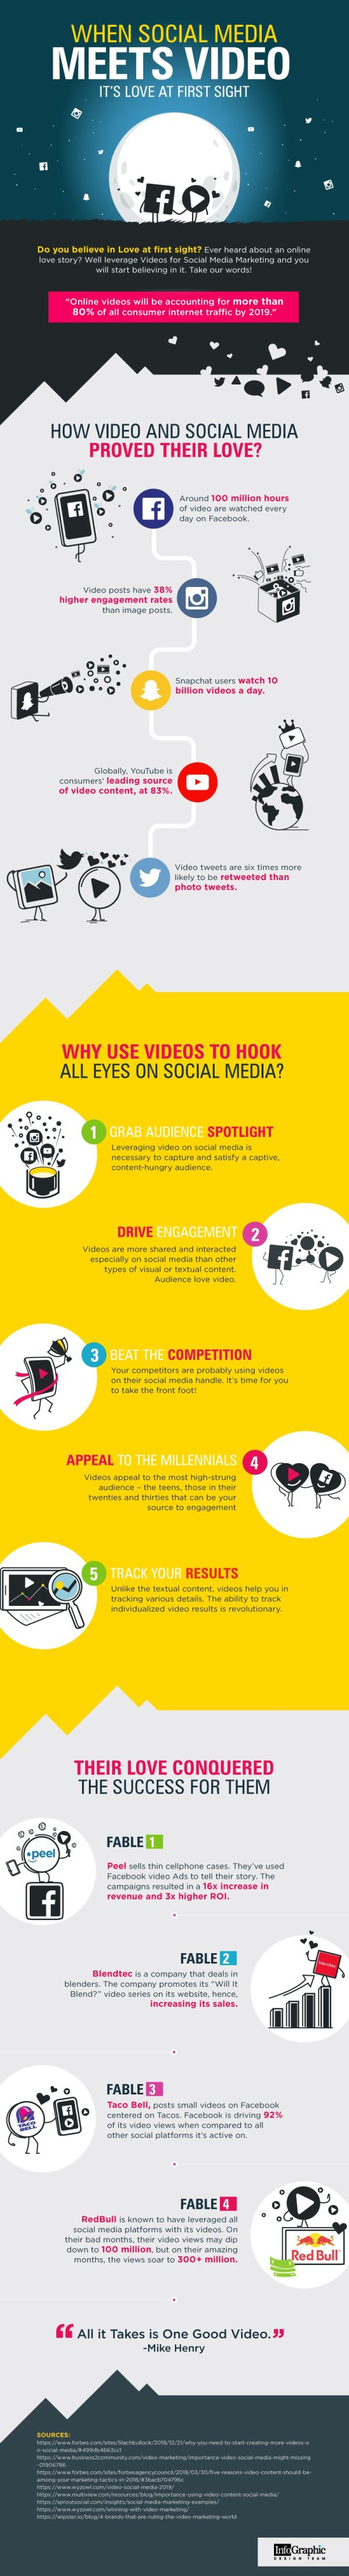 Infographic outlines a range of video marketing stats and usage examples